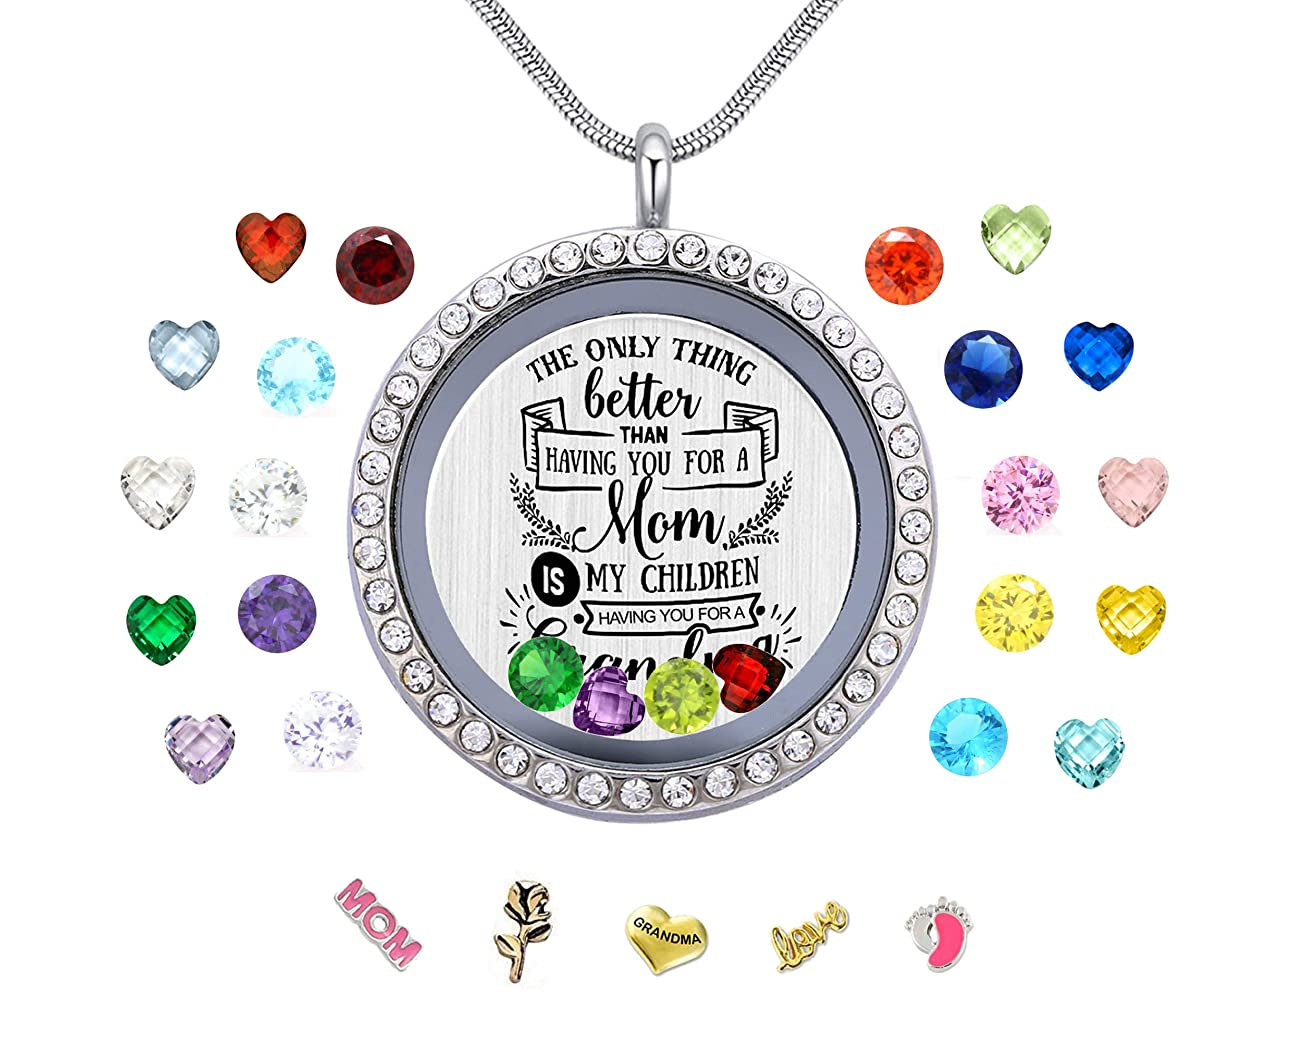 Vinncy Best Mom Mother Gift, Floating Living Memory Locket Necklace Pendant with Charms & Birthstones for Women